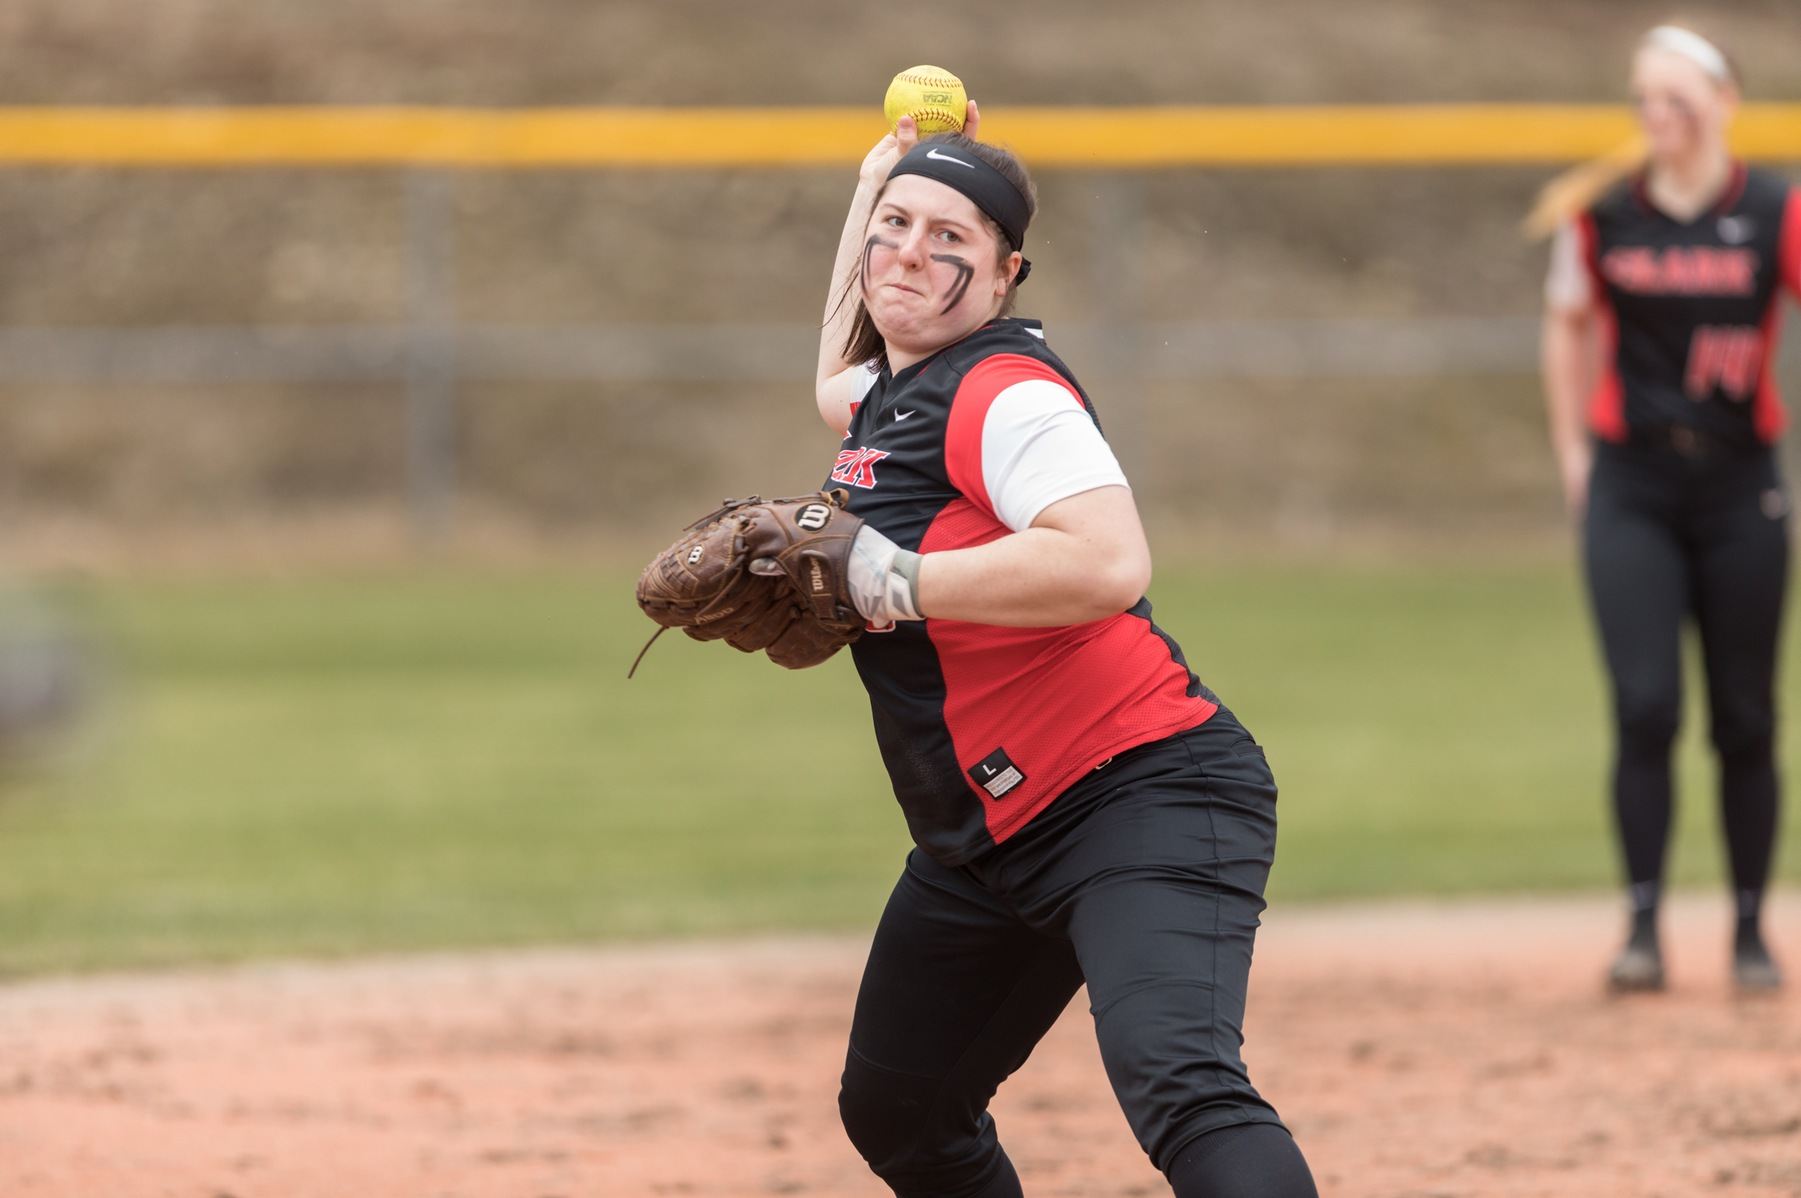 Lancers Strike with Two Victories Over Softball